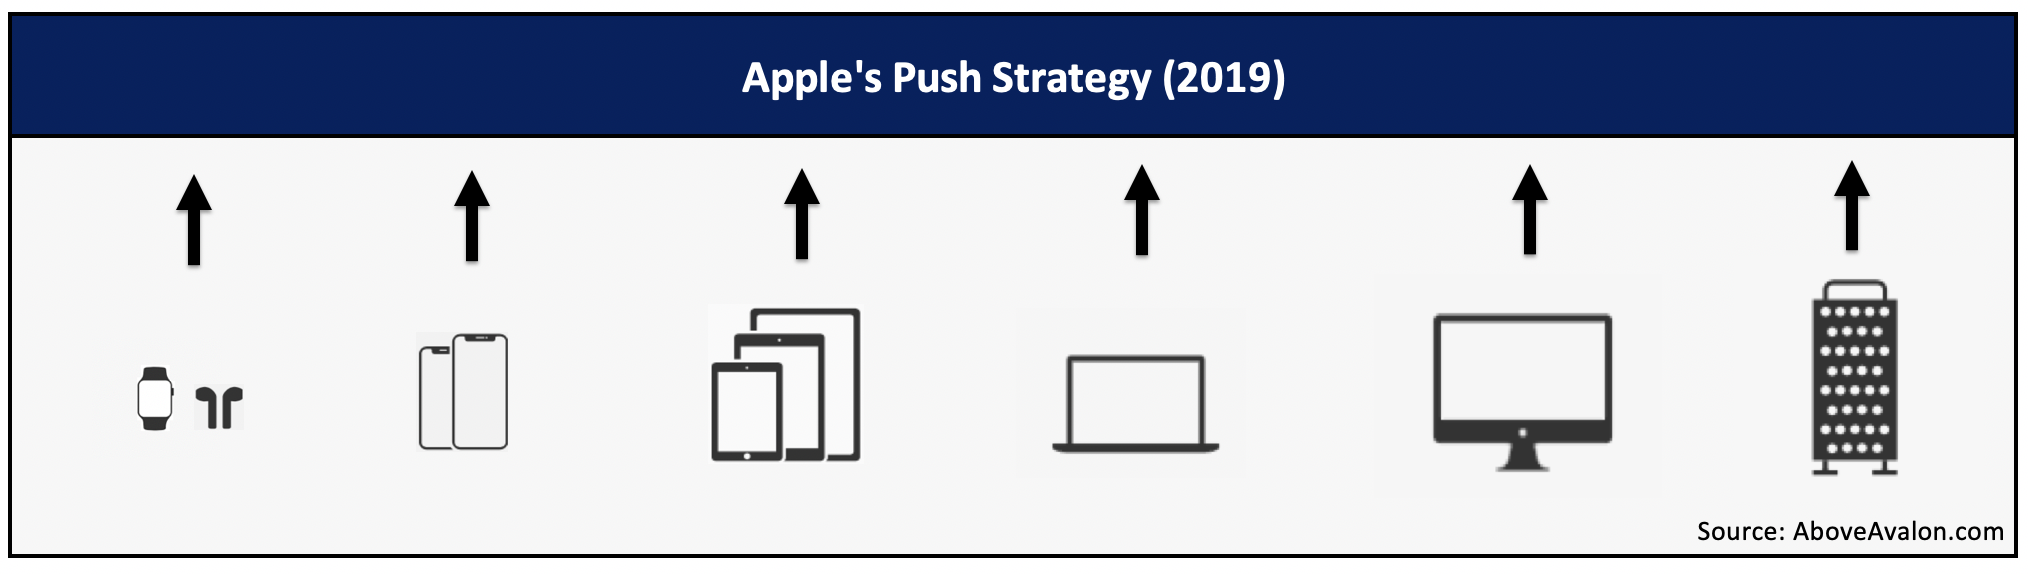 Apple's Push Strategy (Above Avalon)